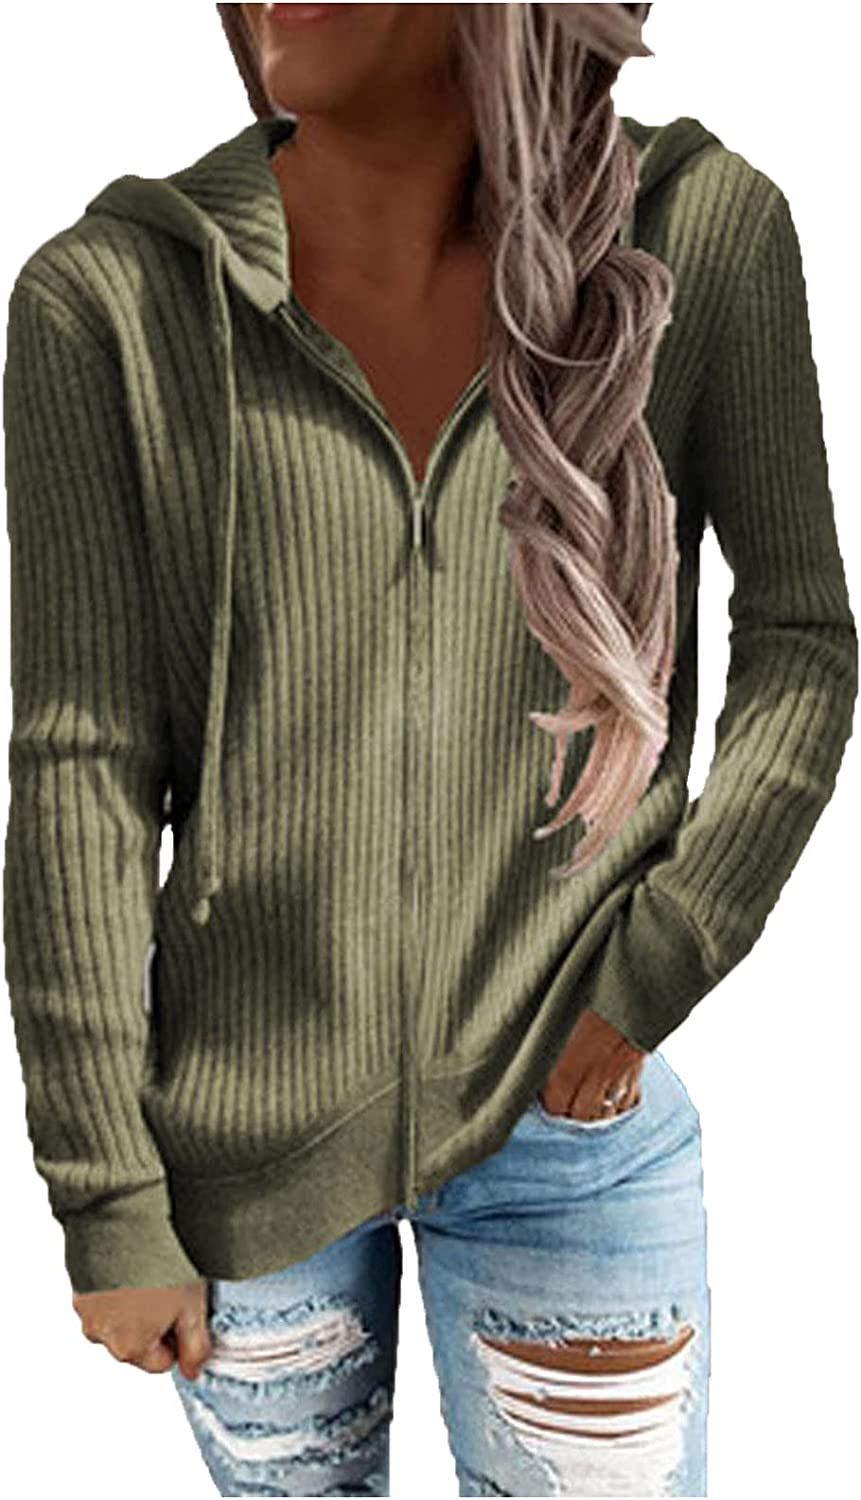 Women's Long Sleeve Direct store Hooded Sweatshirt Solid Color Casual up Zip Max 54% OFF